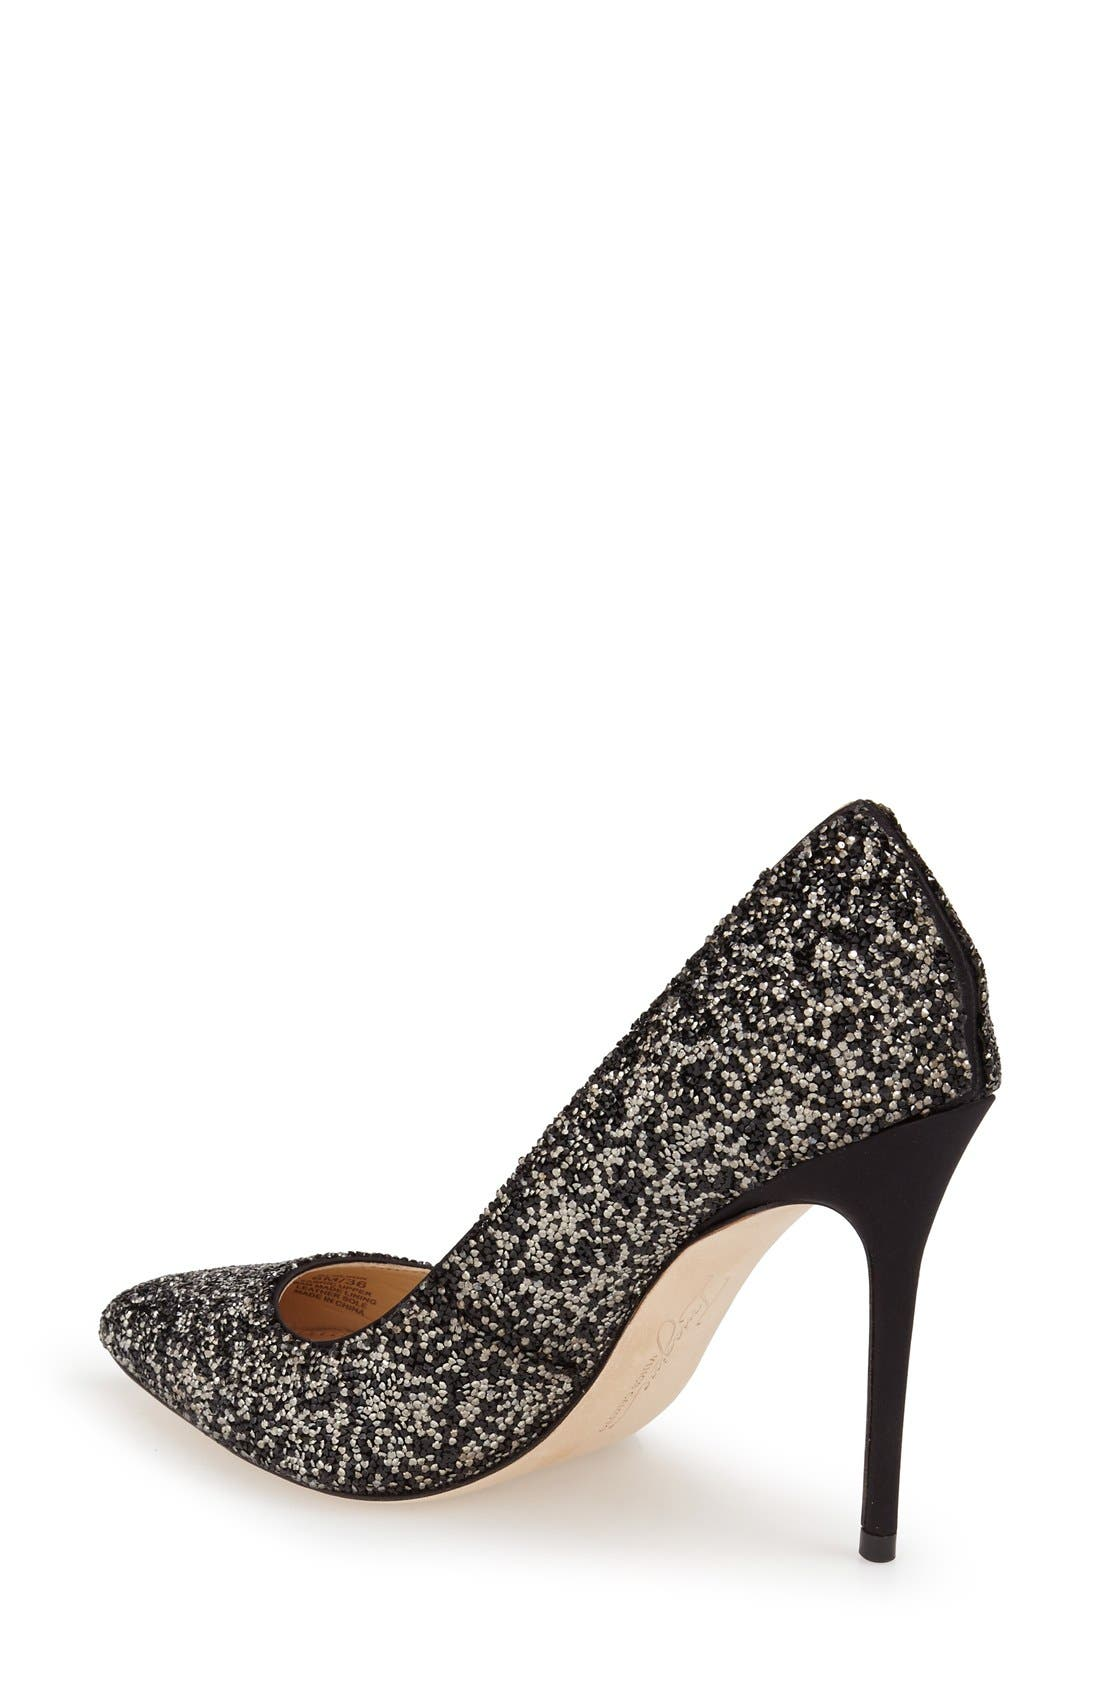 IMAGINE BY VINCE CAMUTO, 'Olson' Crystal Embellished Pump, Alternate thumbnail 2, color, 002